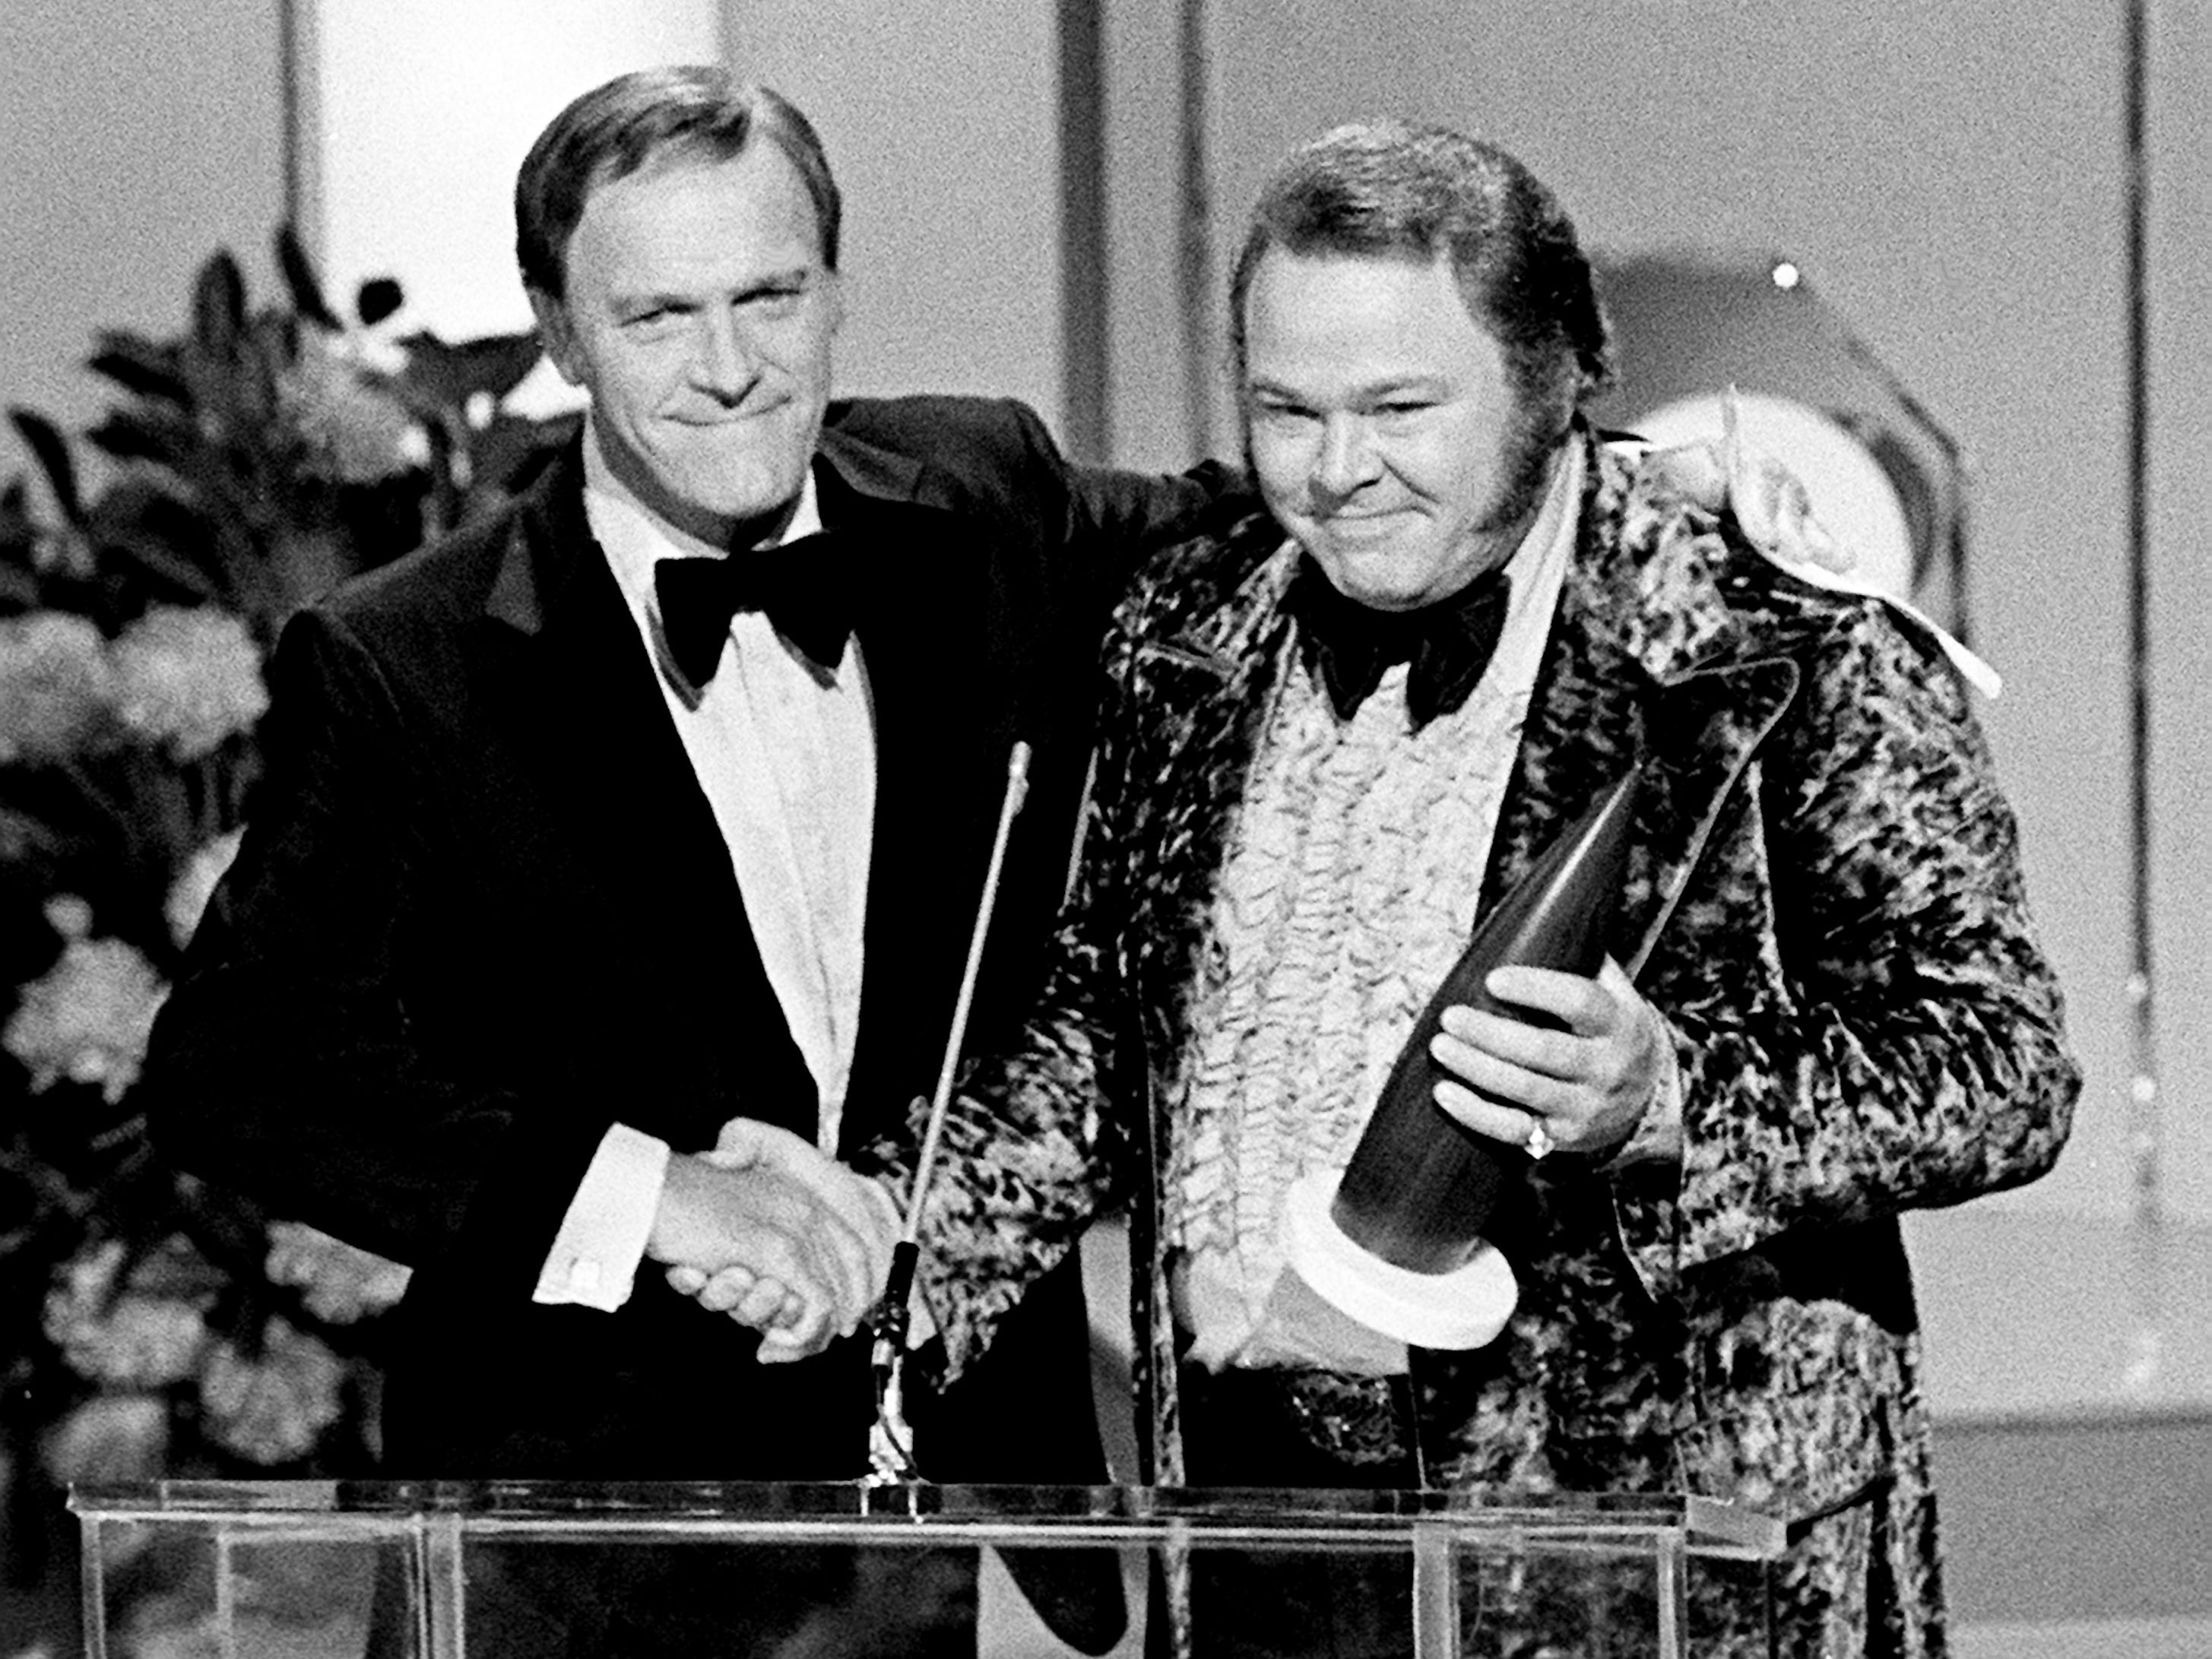 Roy Clark, right, receives congratulations from presenter Eddy Arnold after winning the coveted Entertainer of the Year award at the seventh annual CMA Awards show at the Grand Ole Opry House on Oct. 15, 1973.